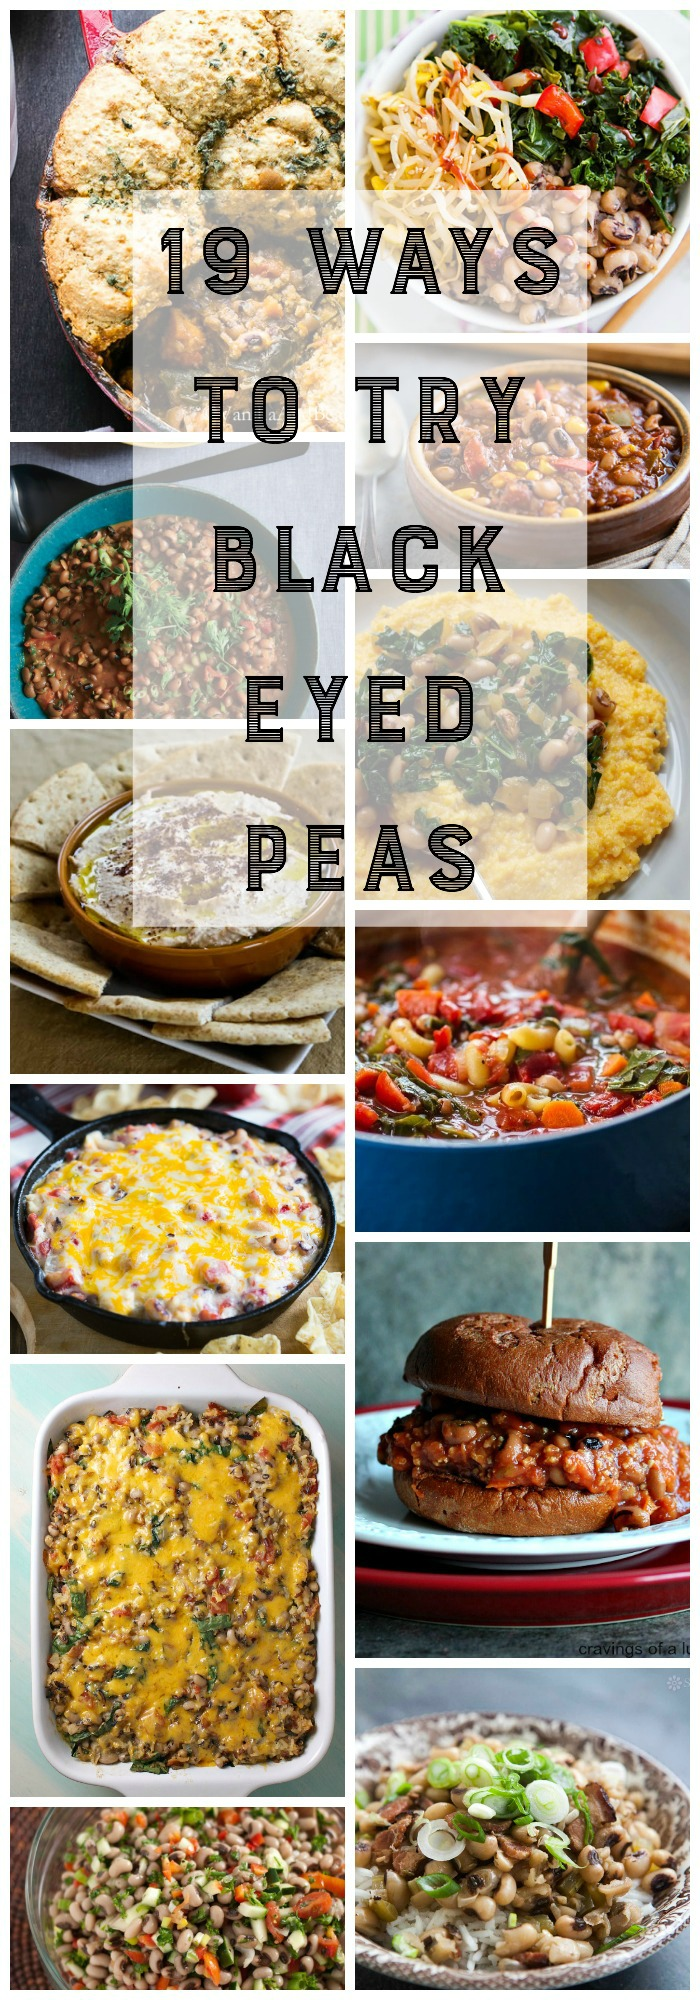 19 ways to eat black eyes peas that aren't the same old boring thing you remember eating growing up